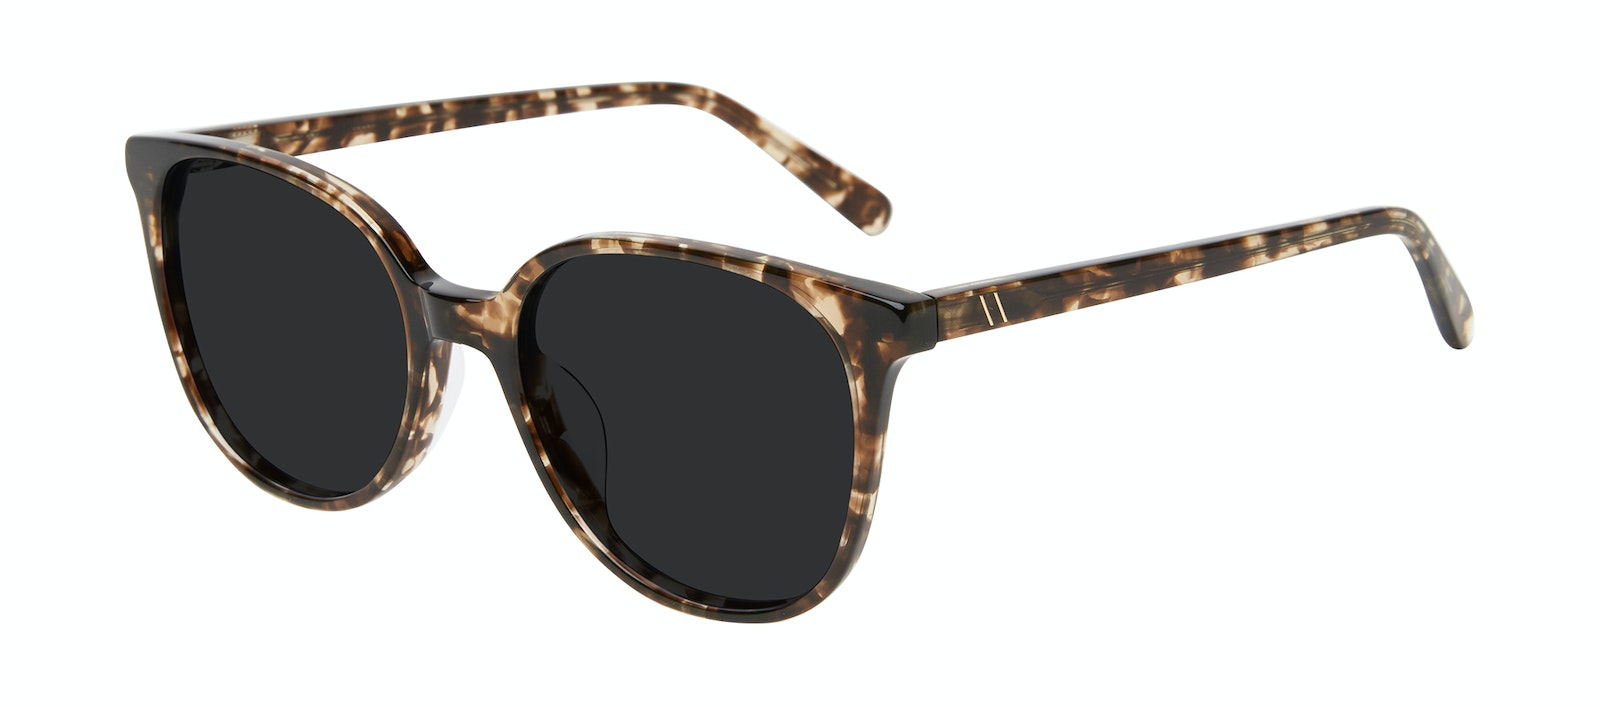 Affordable Fashion Glasses Square Sunglasses Women Novel Leopard Tilt